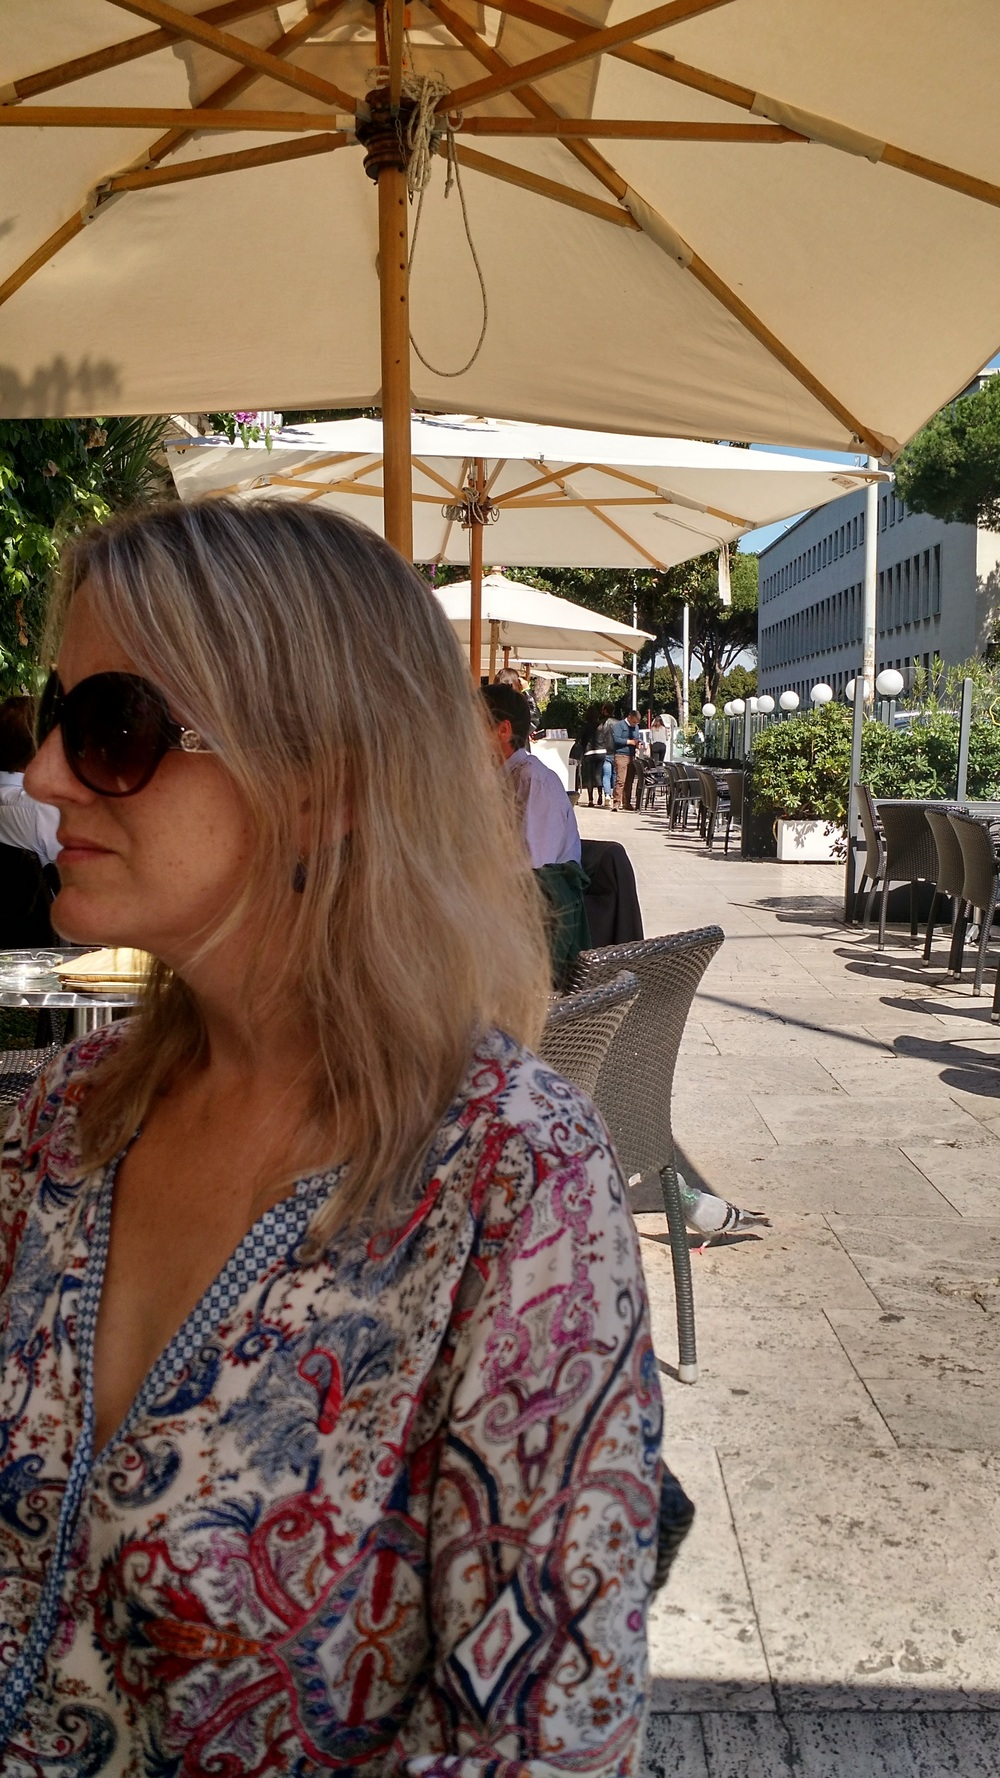 Outdoor cafes stops are a plenty during your time in Italy